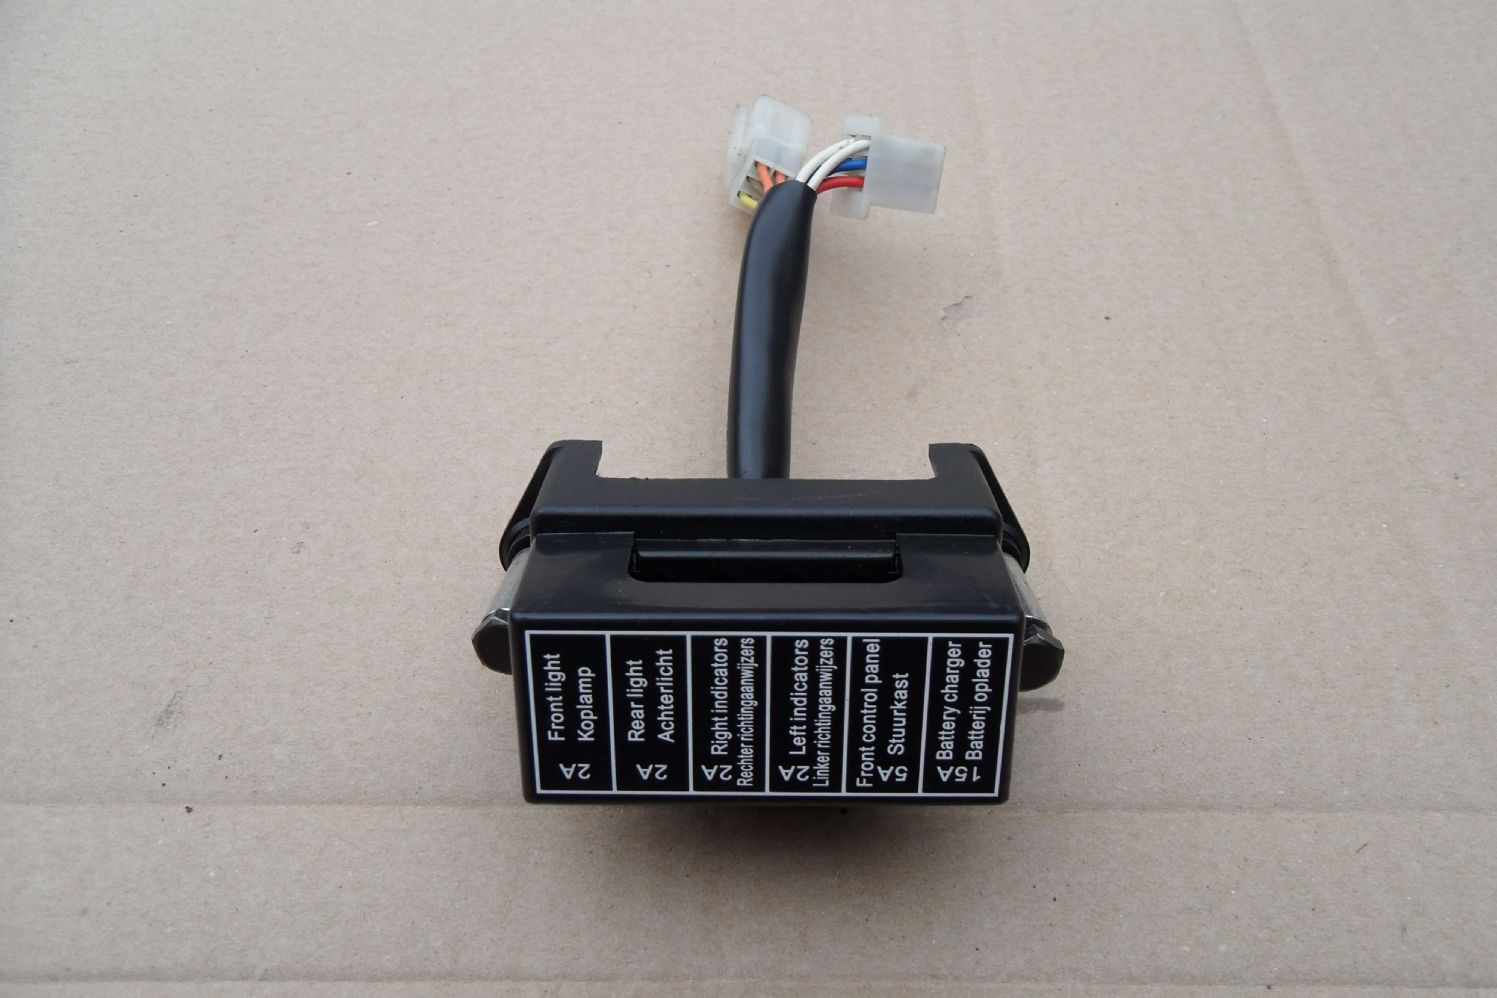 a fuse box for a sunrise sterling onyx mobility scooter pmo15 12083 p scooter fuse box scooter headlight assembly \u2022 wiring diagram 150cc scooter fuse box at mifinder.co